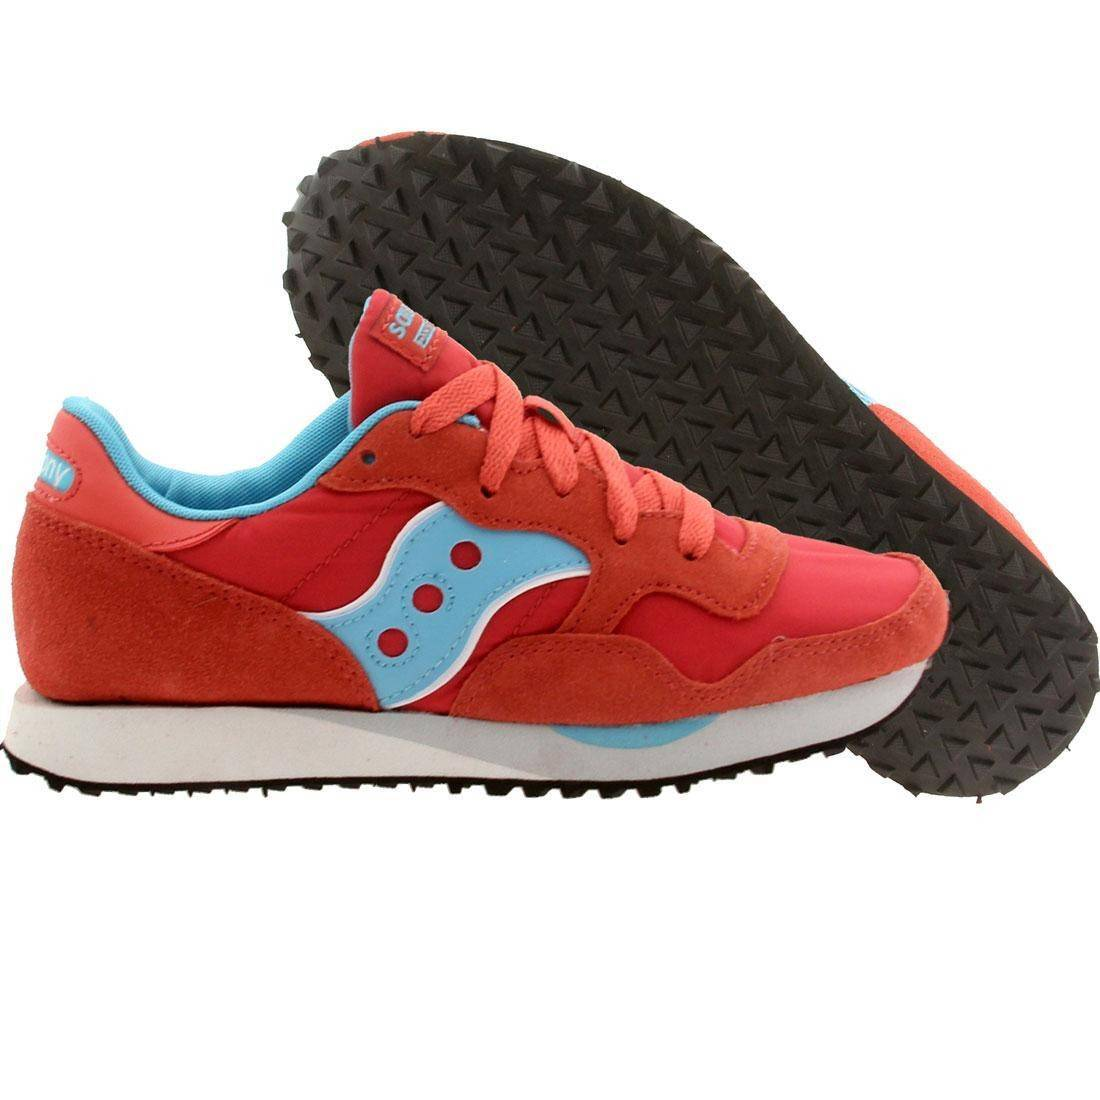 Saucony Women DXN Trainer red light bluee S60124-18